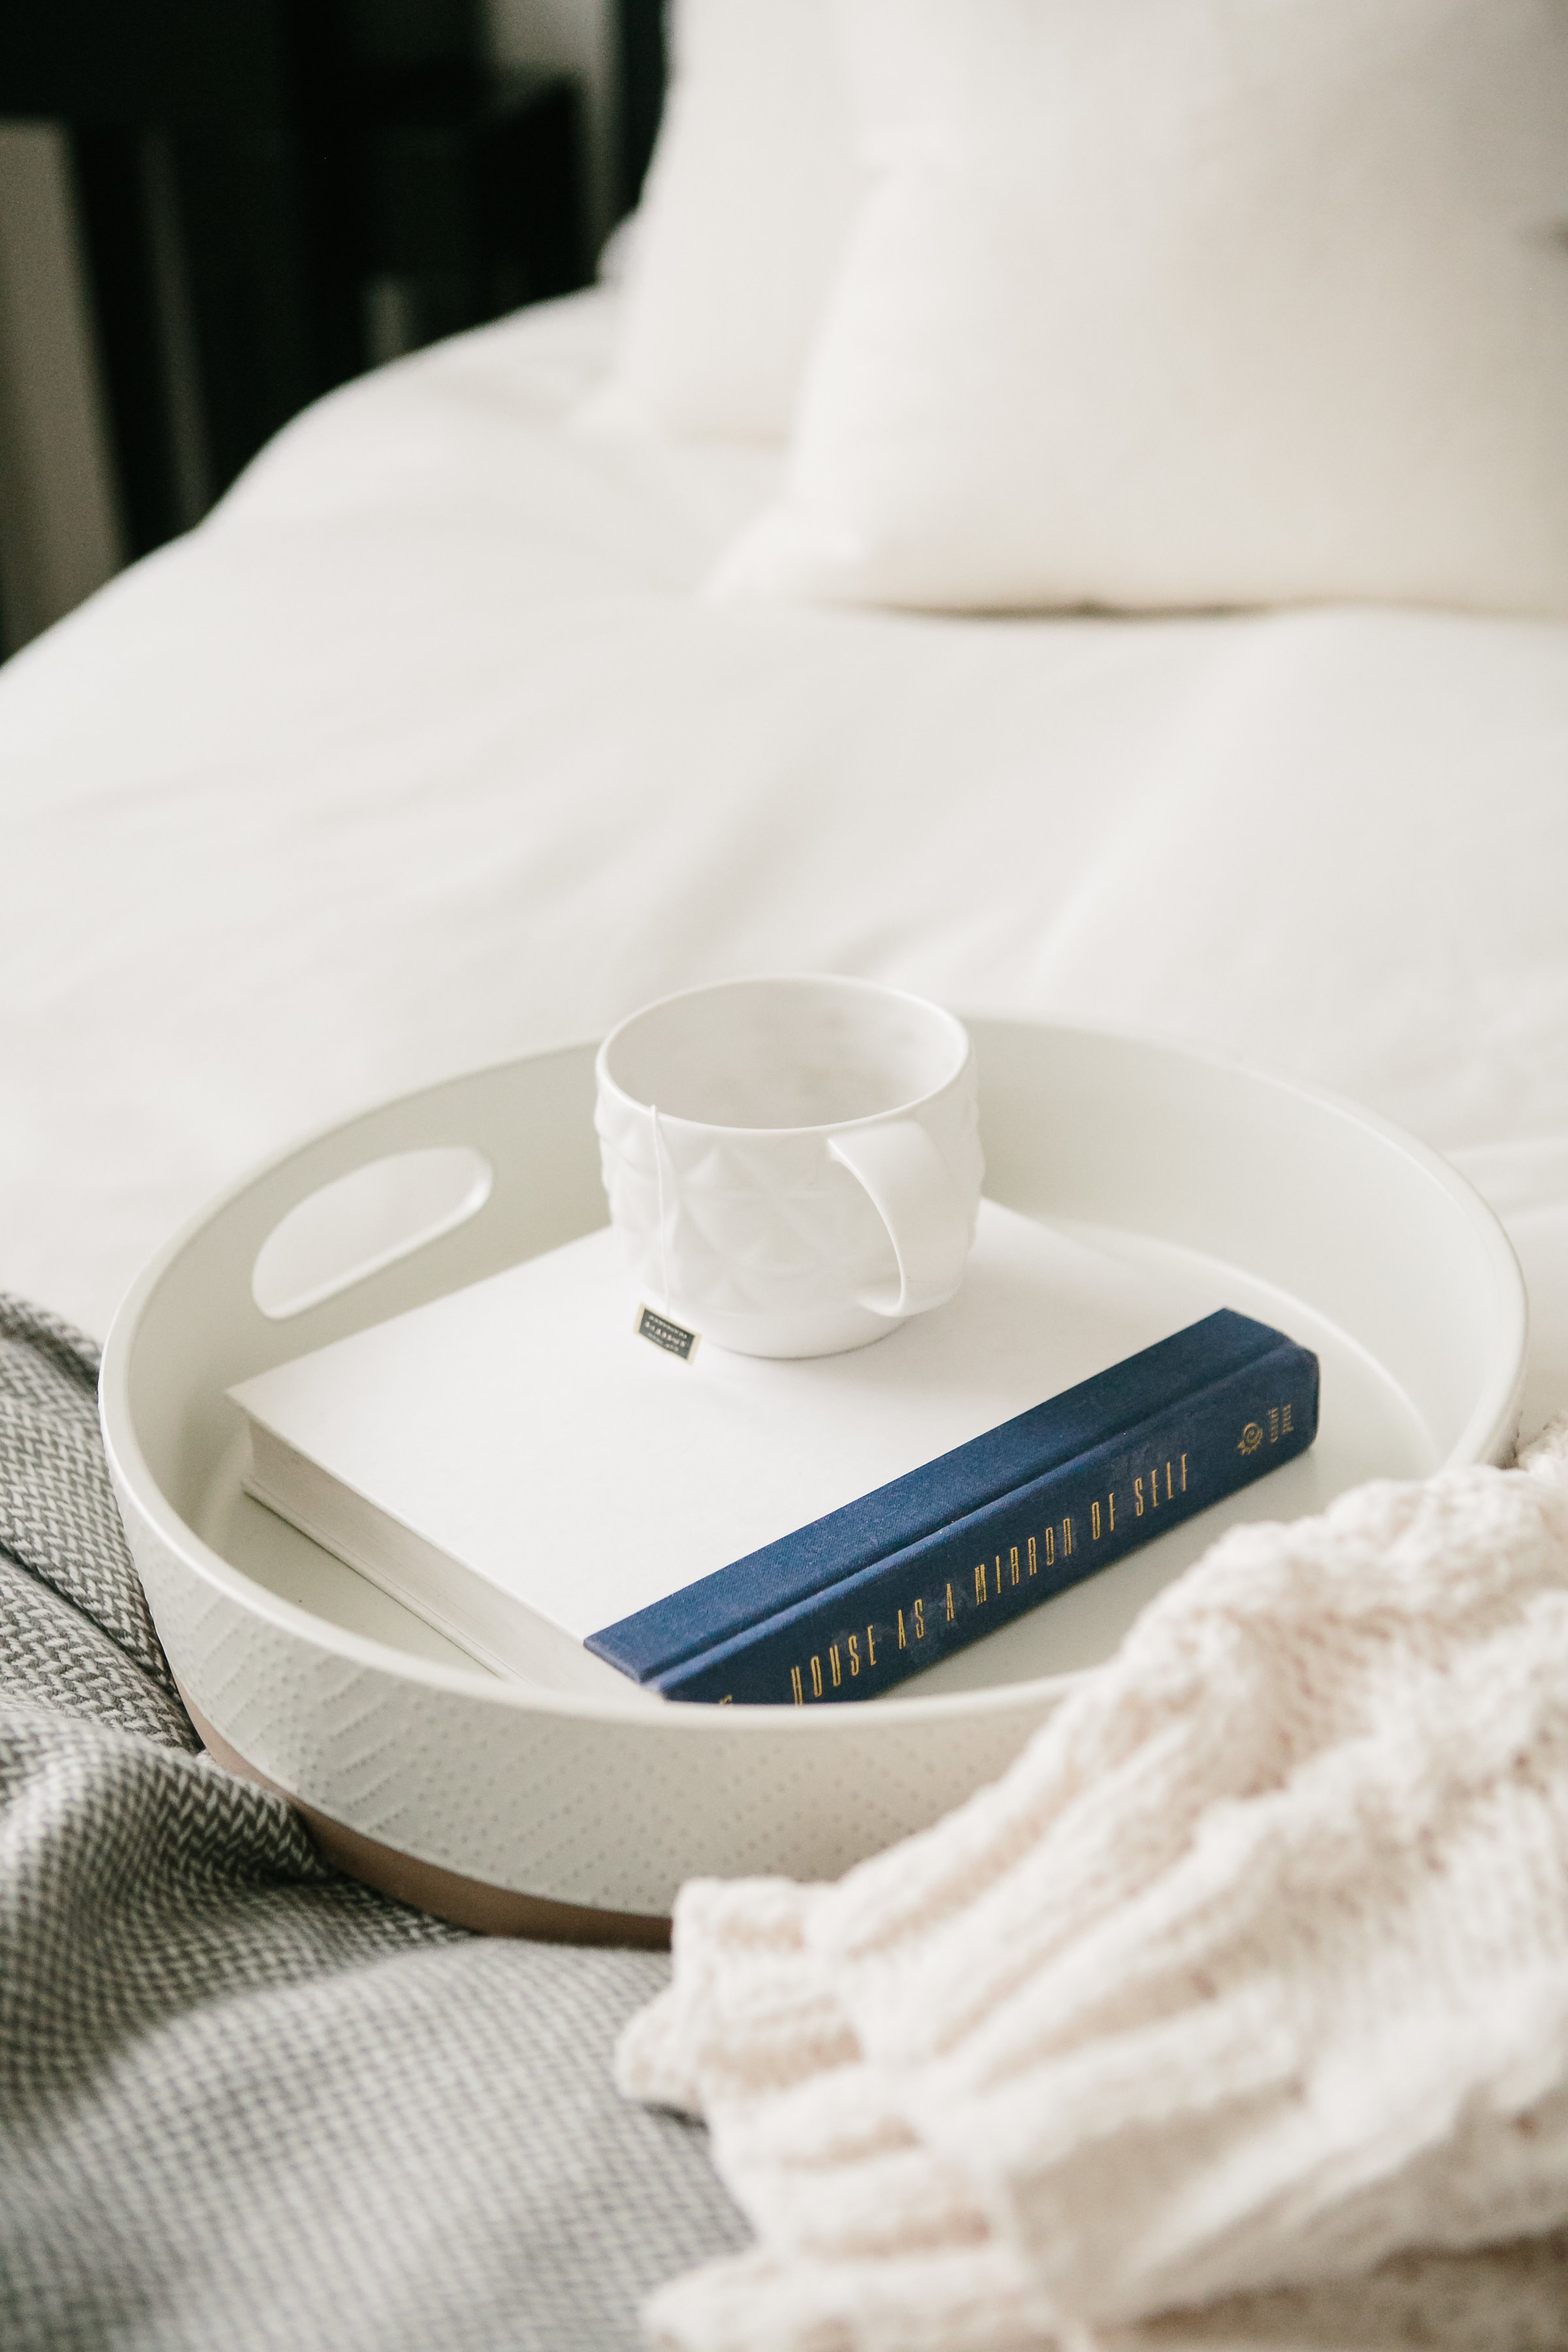 A tray, book and mug on a guest bedroom designed by an interior designer.